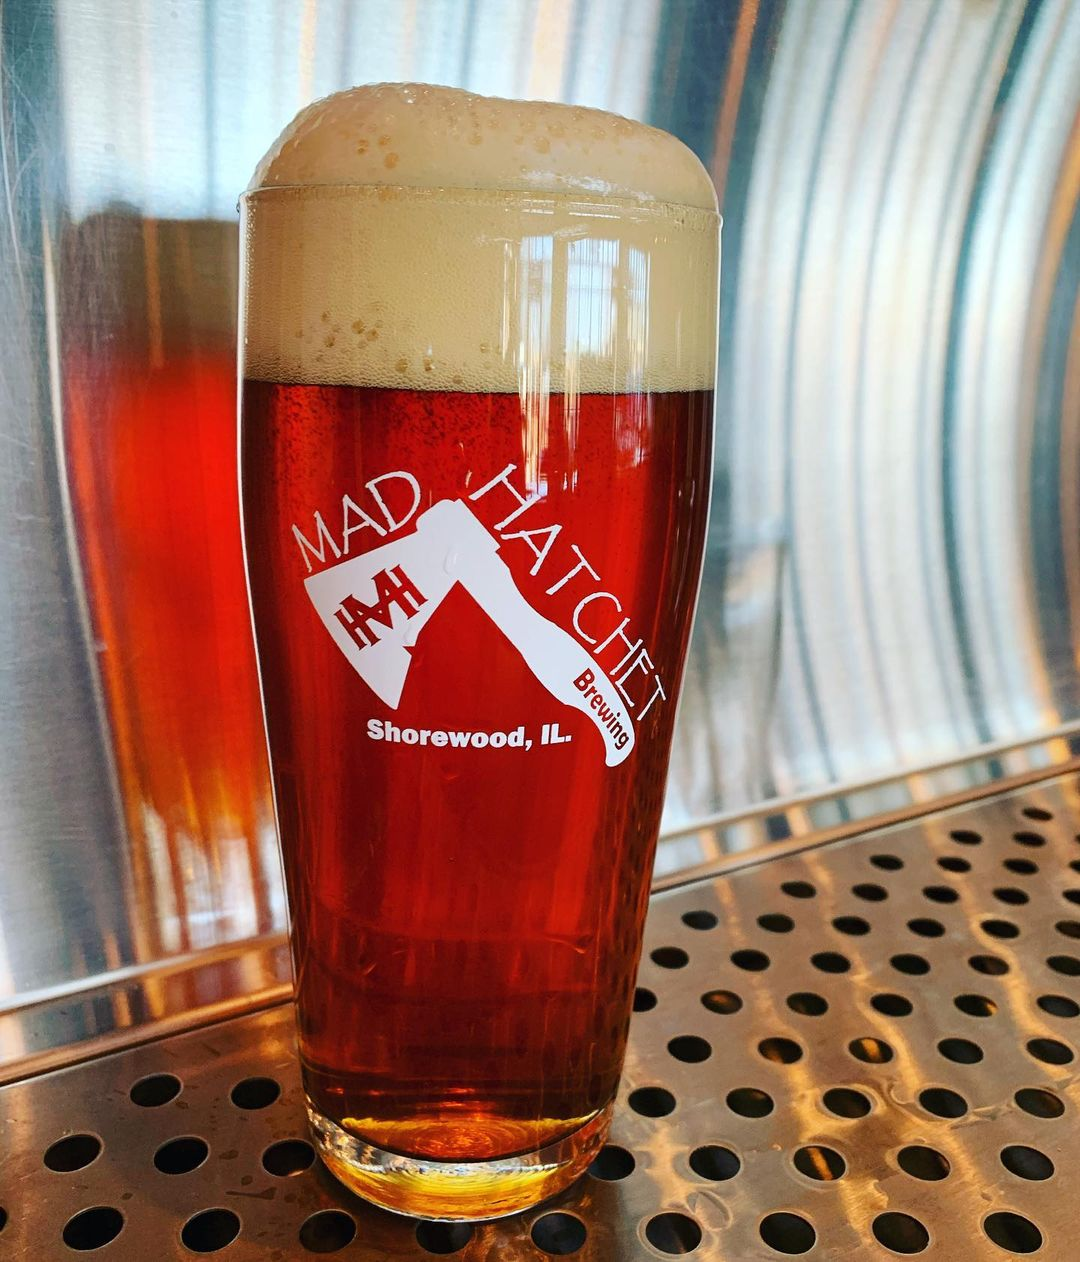 A glass of Sawzall Kung Fu from Mad Hatchet Brewing in Shorewood, IL